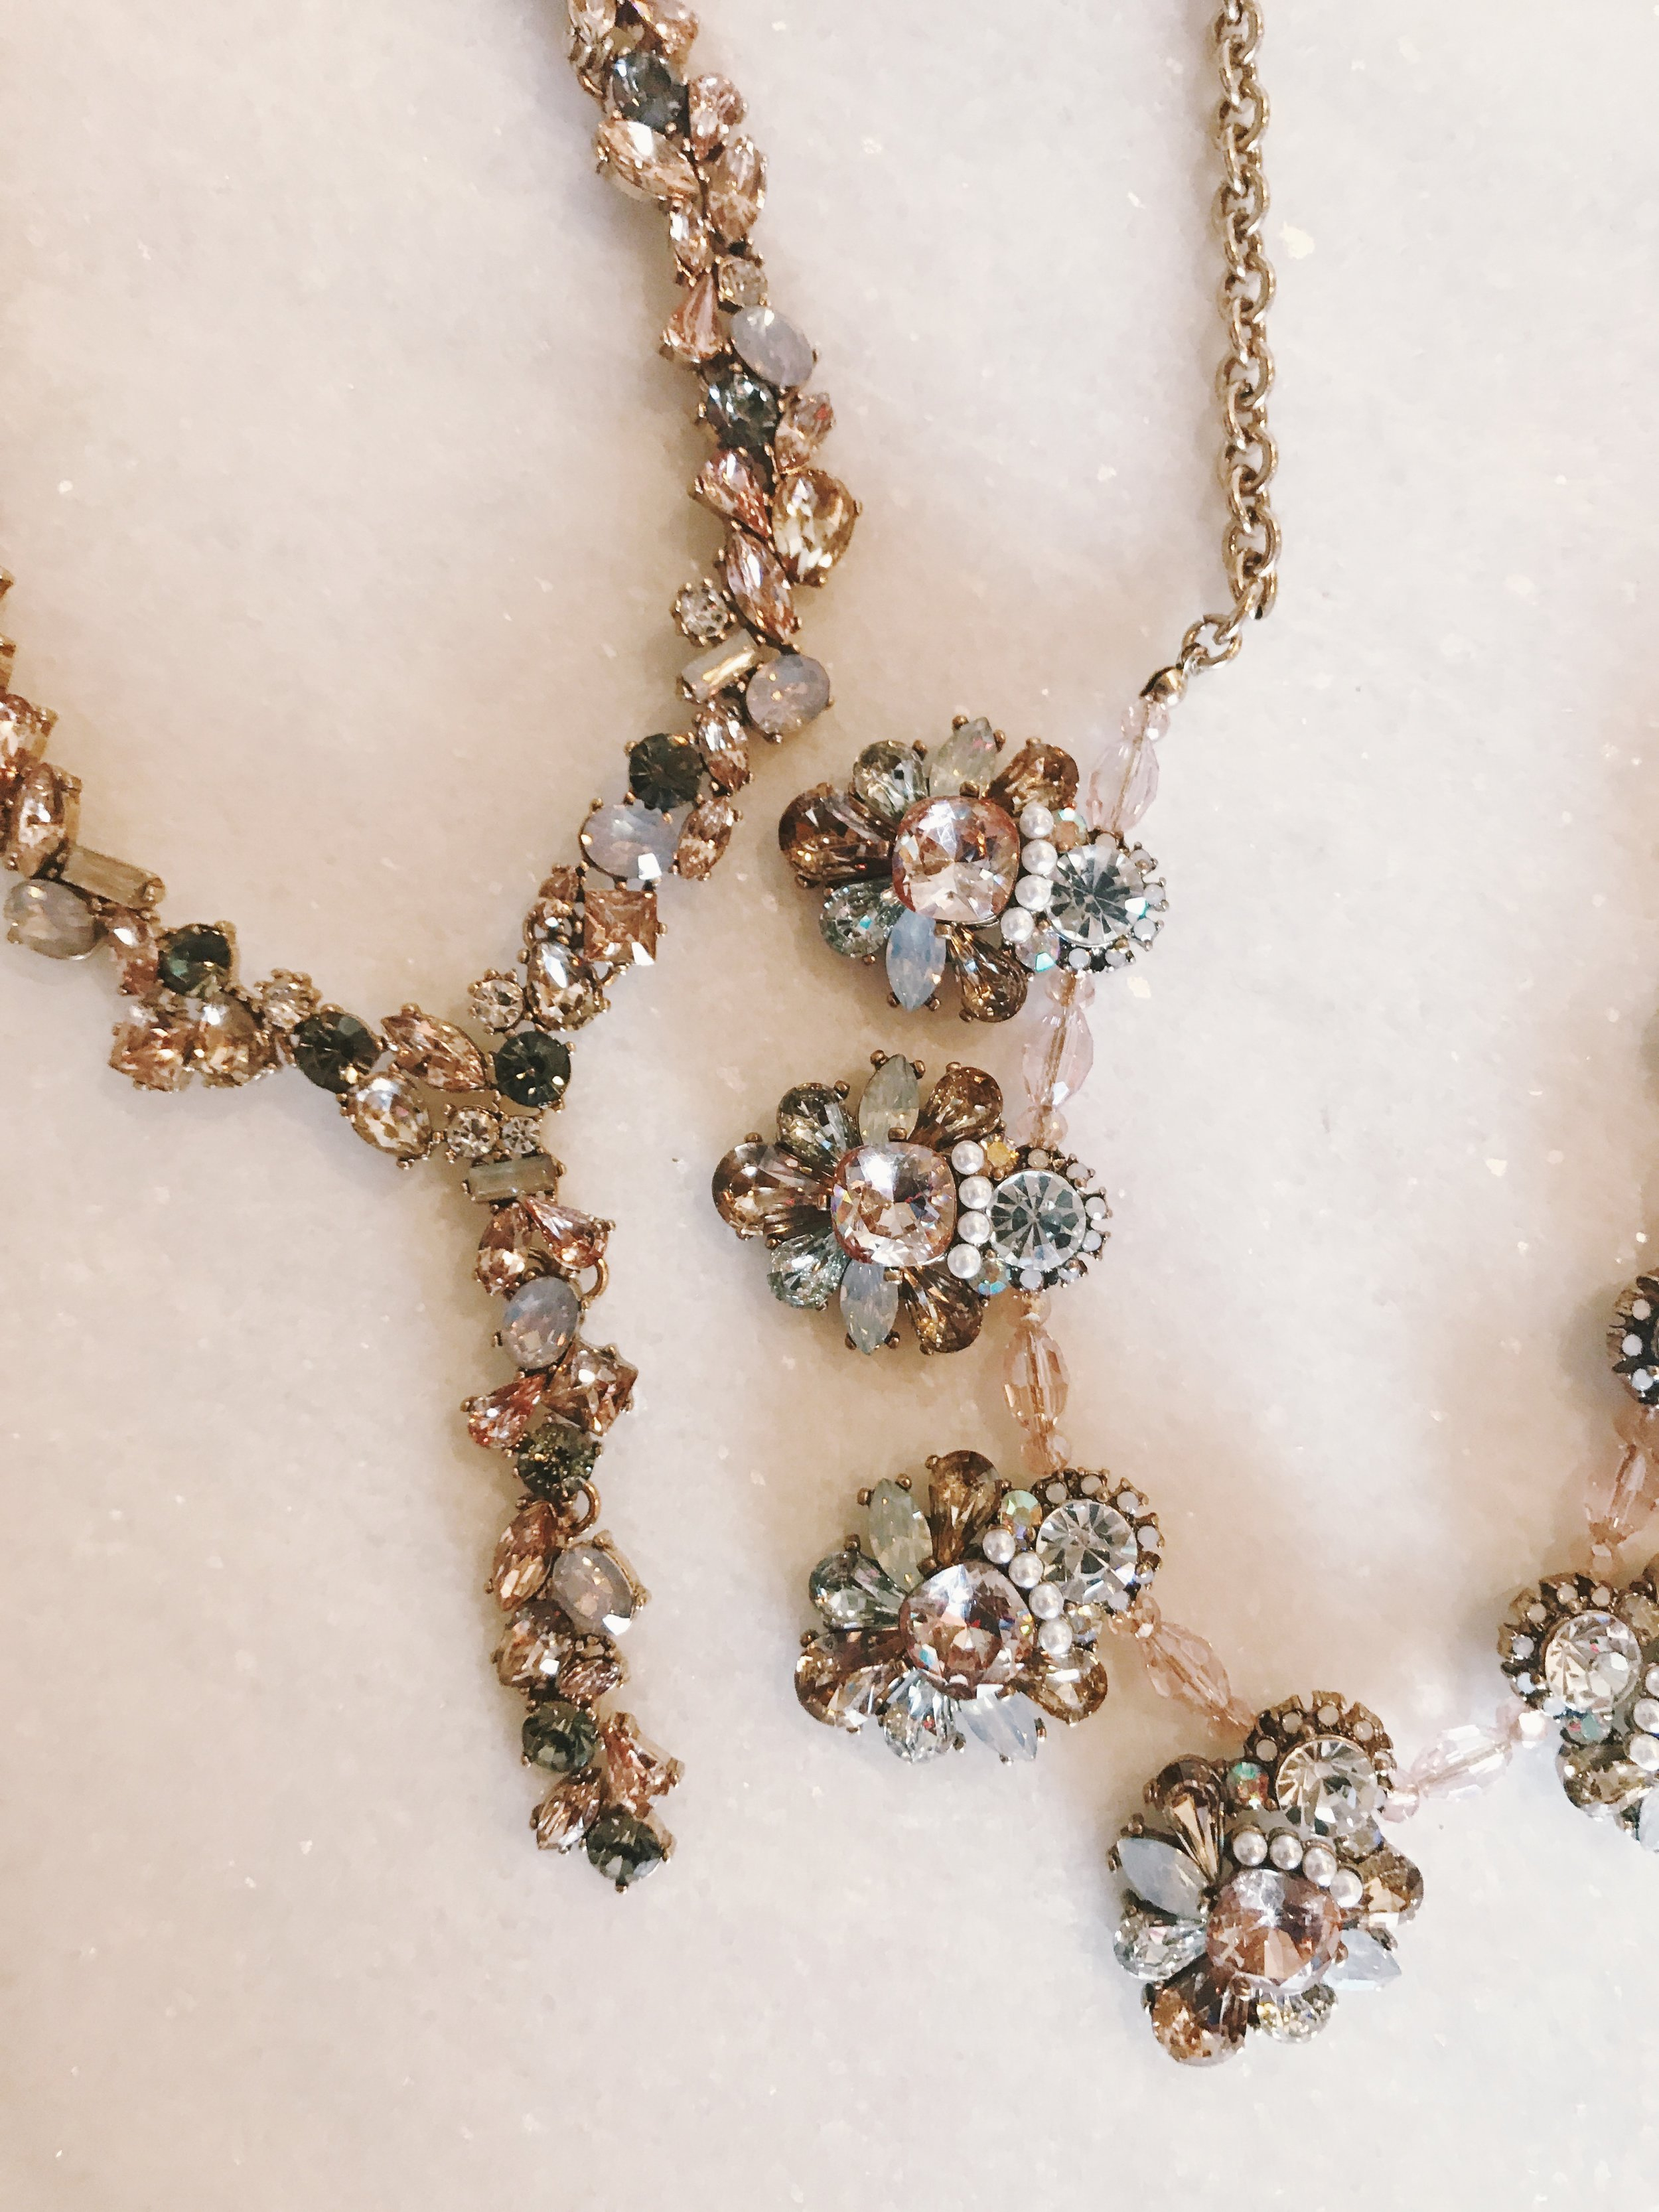 Diamonds are YOUR girls best friend - The quote doesn't lie. A perfect gift for ANY season is jewelry, especially during the holidays when you get to dress up for events and work parties. Be Yourself has amazing pieces that are always one of a kind. Like your loved one ;)Necklaces ranging in price from $10-$35